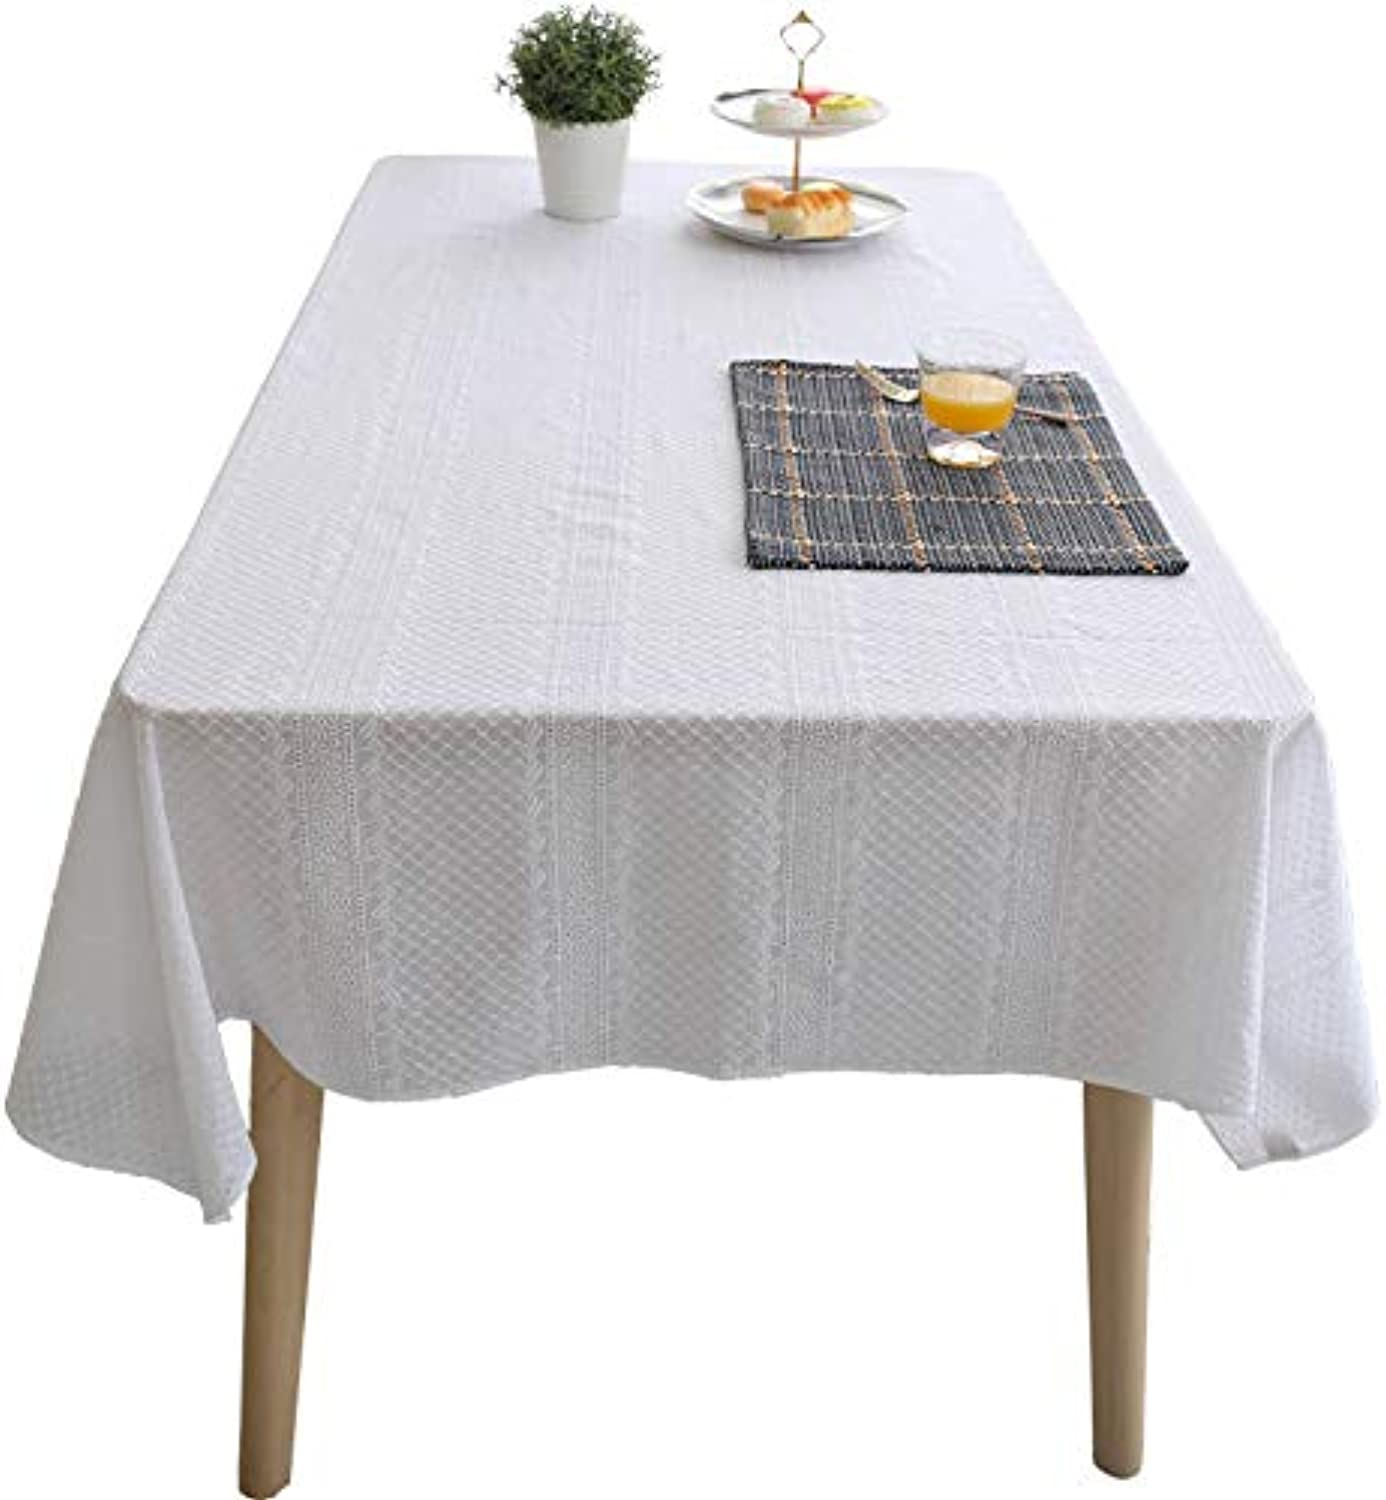 Creek Ywh Simple modern tablecloth plain tablecloth living room European coffee table tablecloth tablecloth rectangle, netted summer foam white, 110170cm